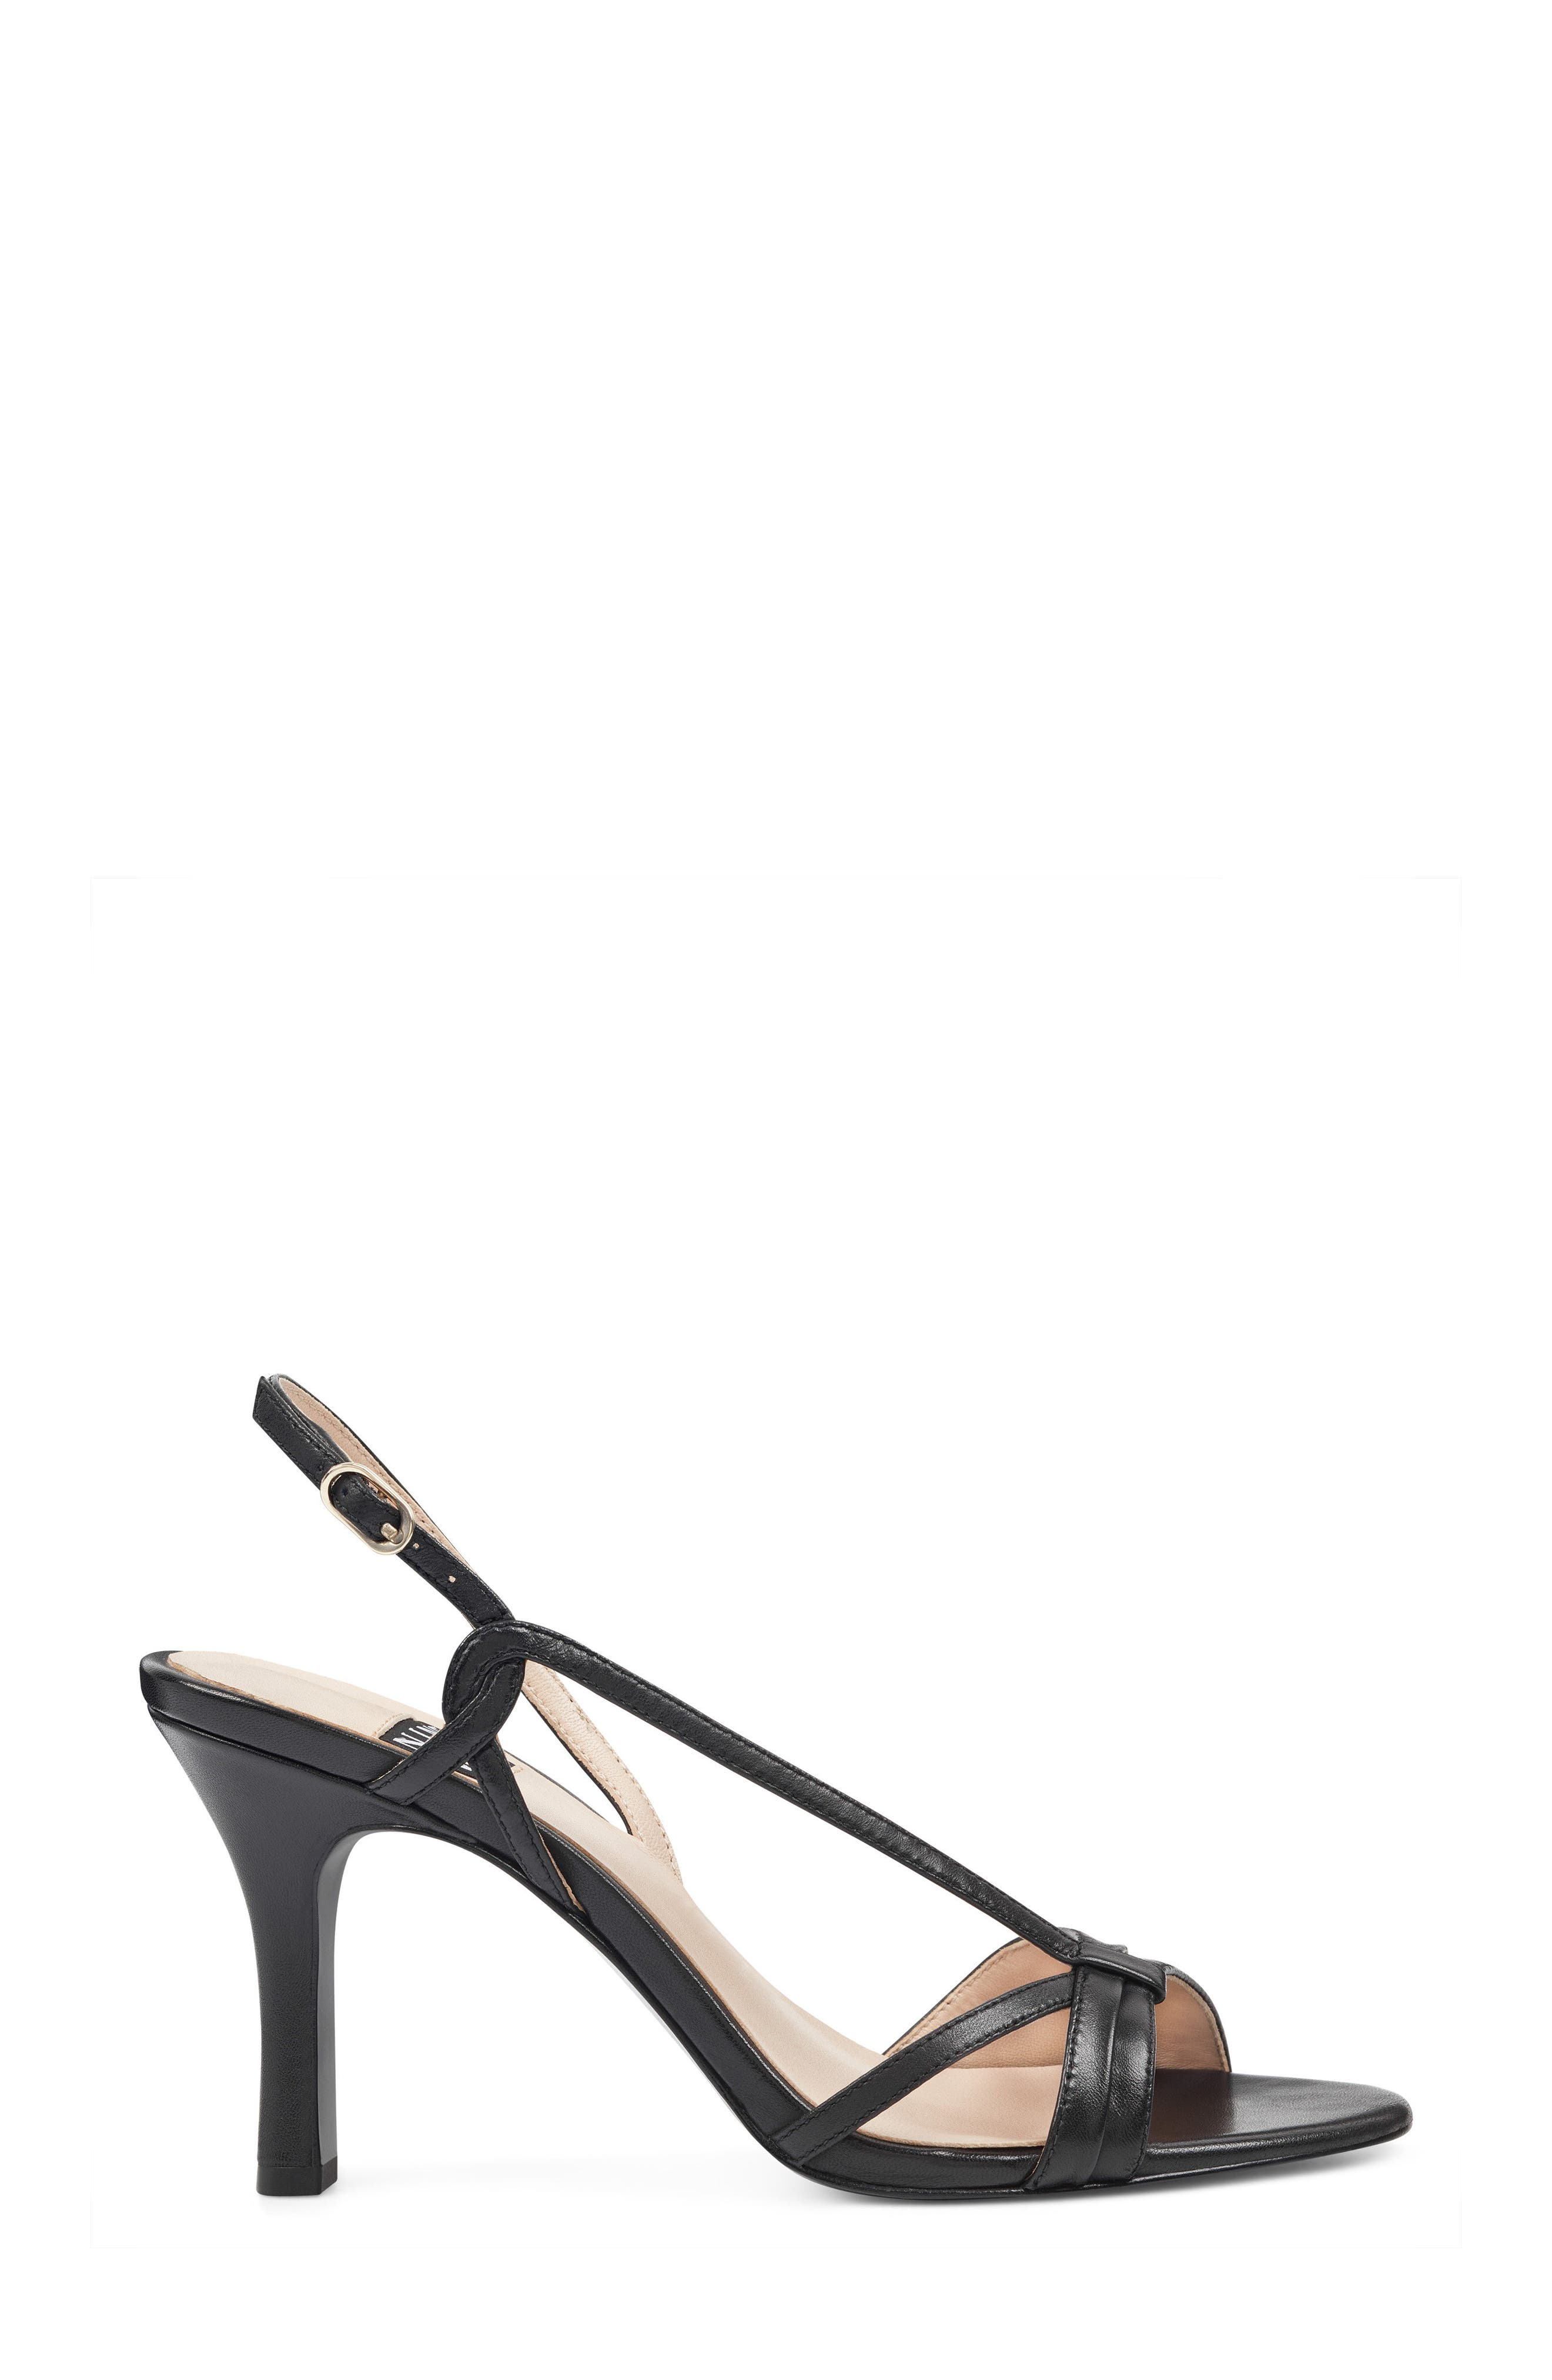 Accolia - 40th Anniversary Capsule Collection Sandal,                             Alternate thumbnail 3, color,                             BLACK LEATHER